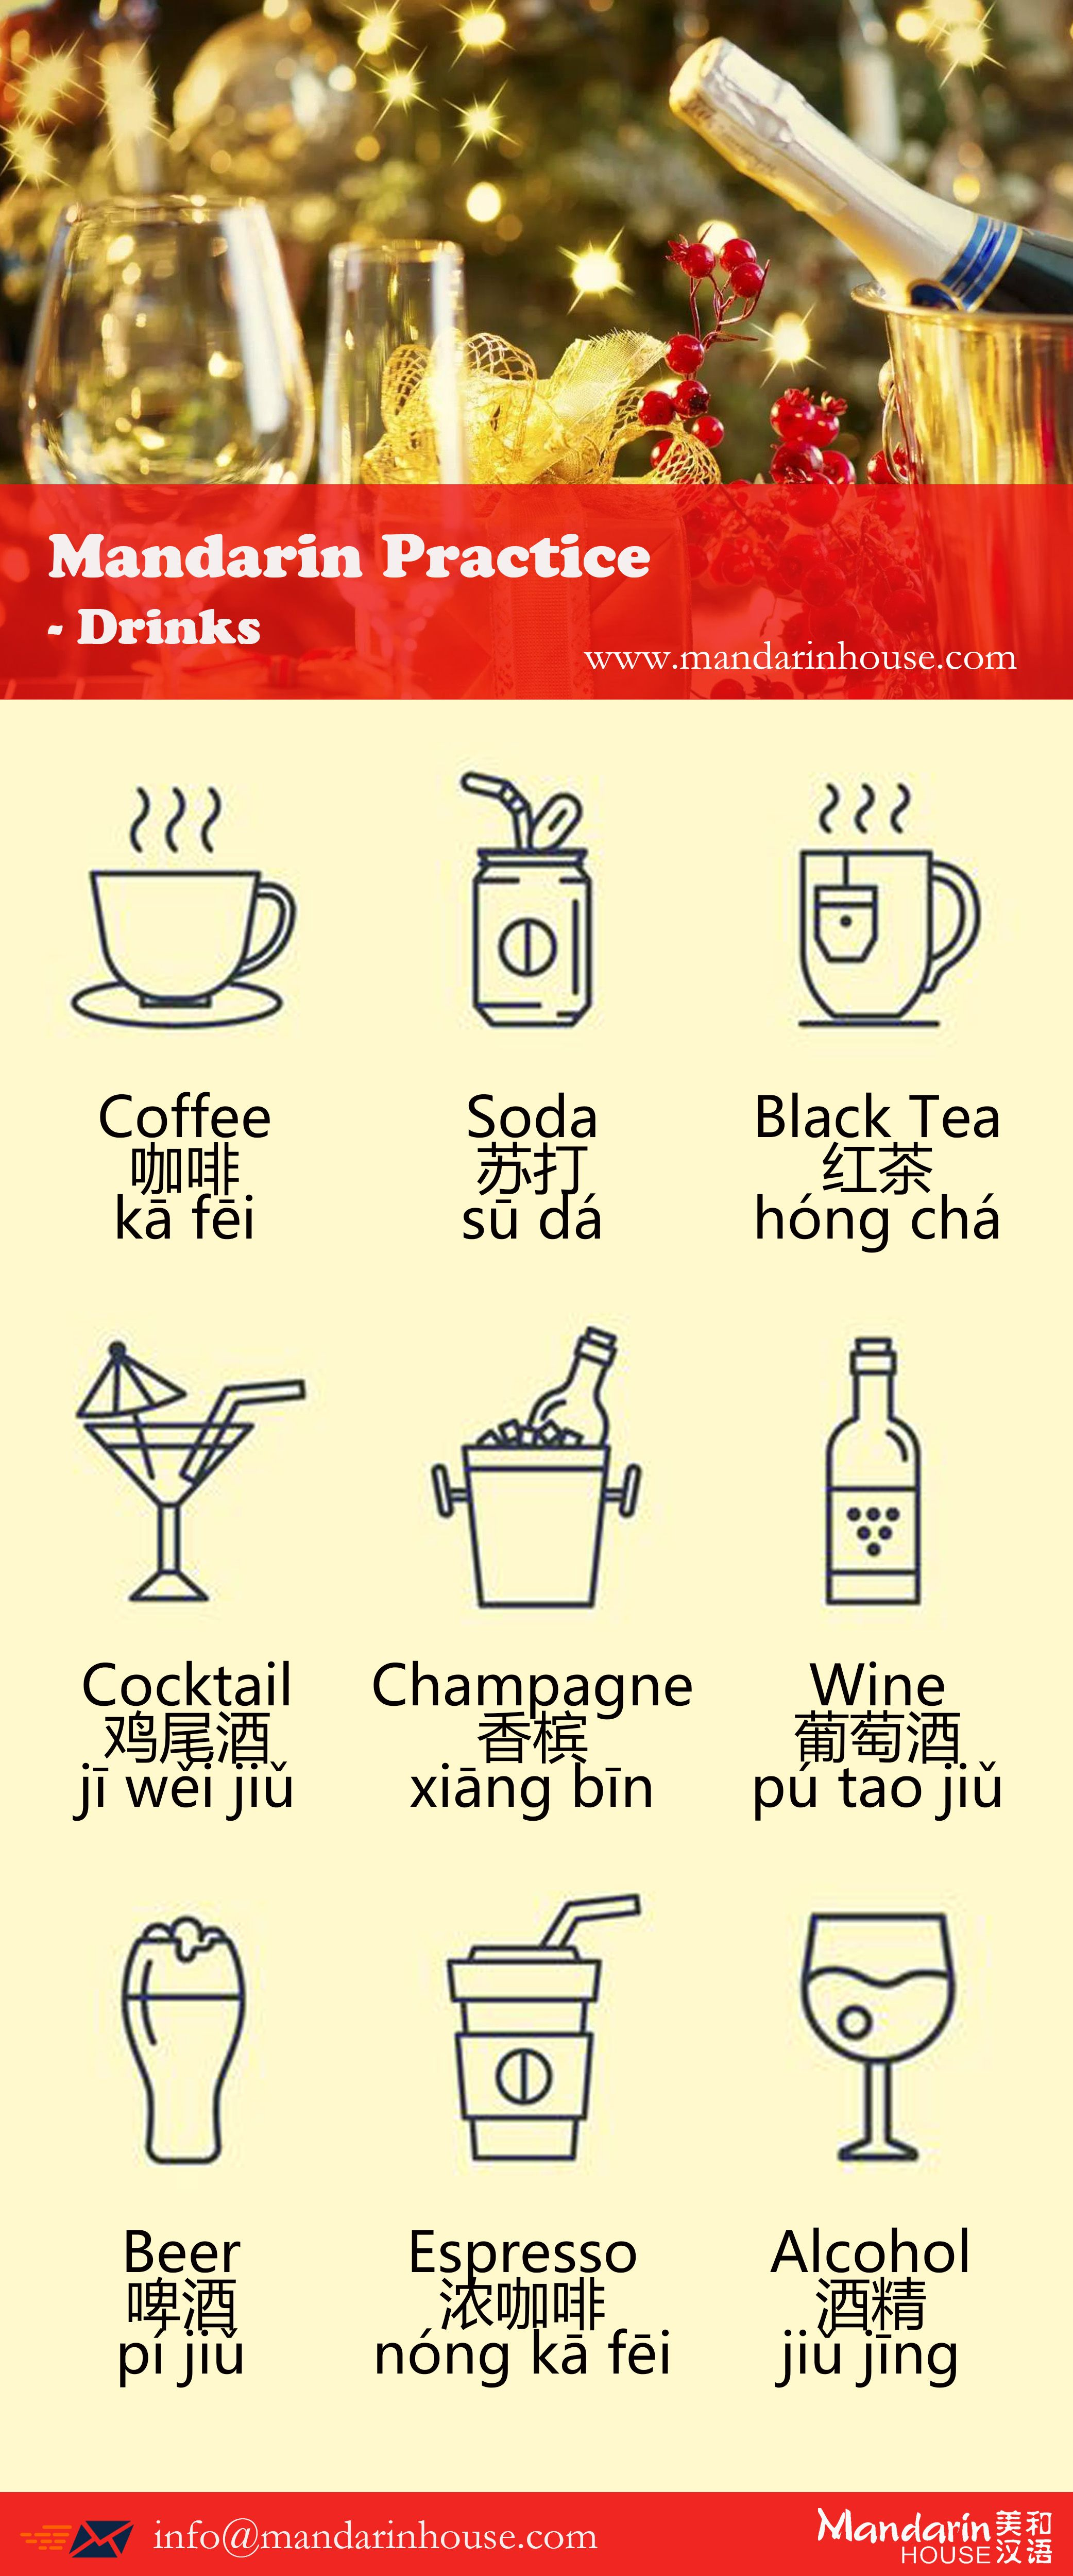 Drinks in chineser more info please contact bodi drinks in chineser more info please contact bodimandarinhouse buycottarizona Choice Image